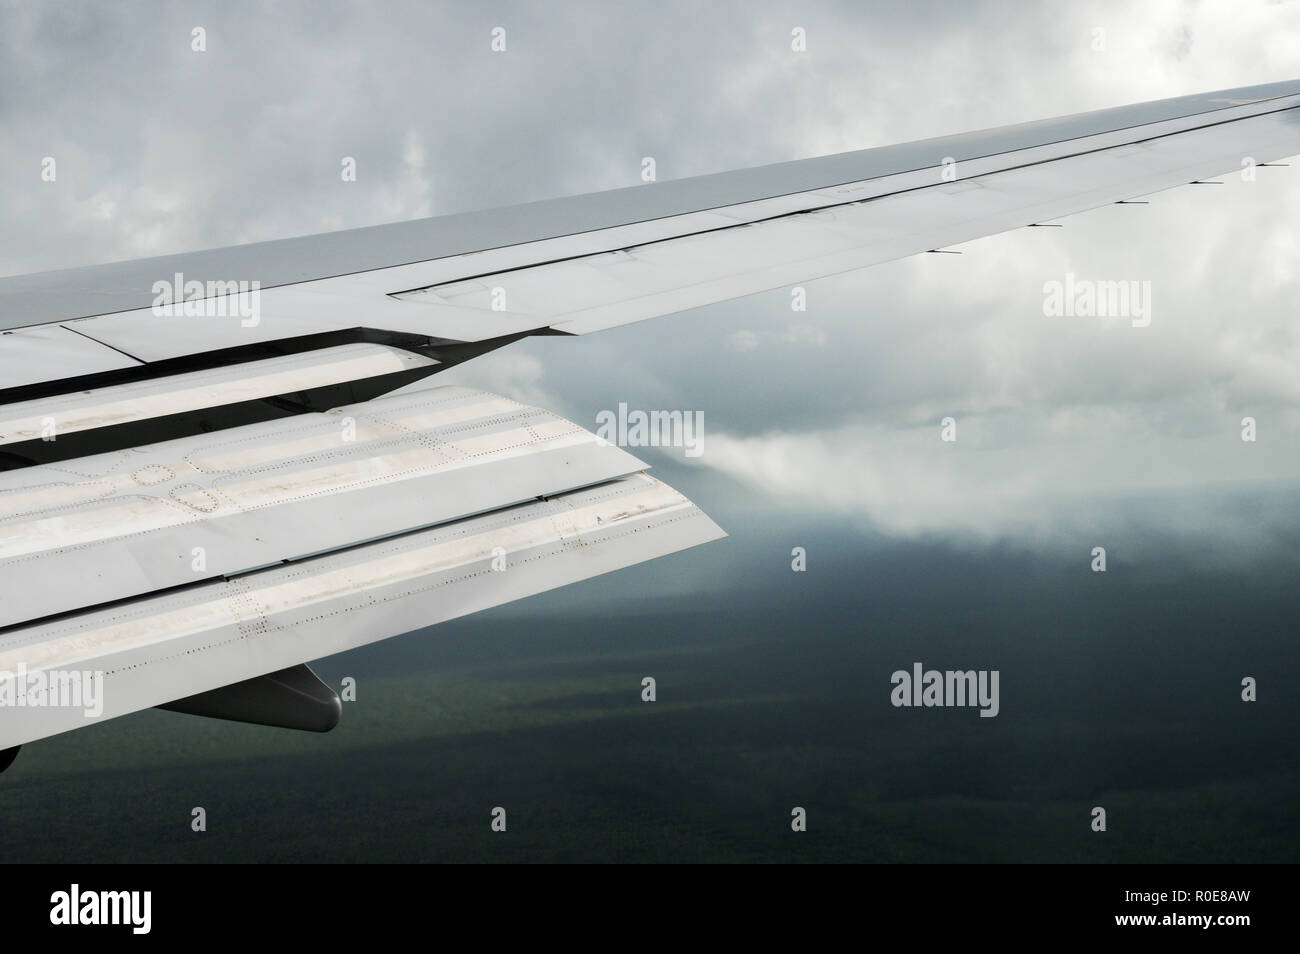 Visible vortex created by the extended flap of a Boeing 747 landing in Cancun in humid conditions - Stock Image